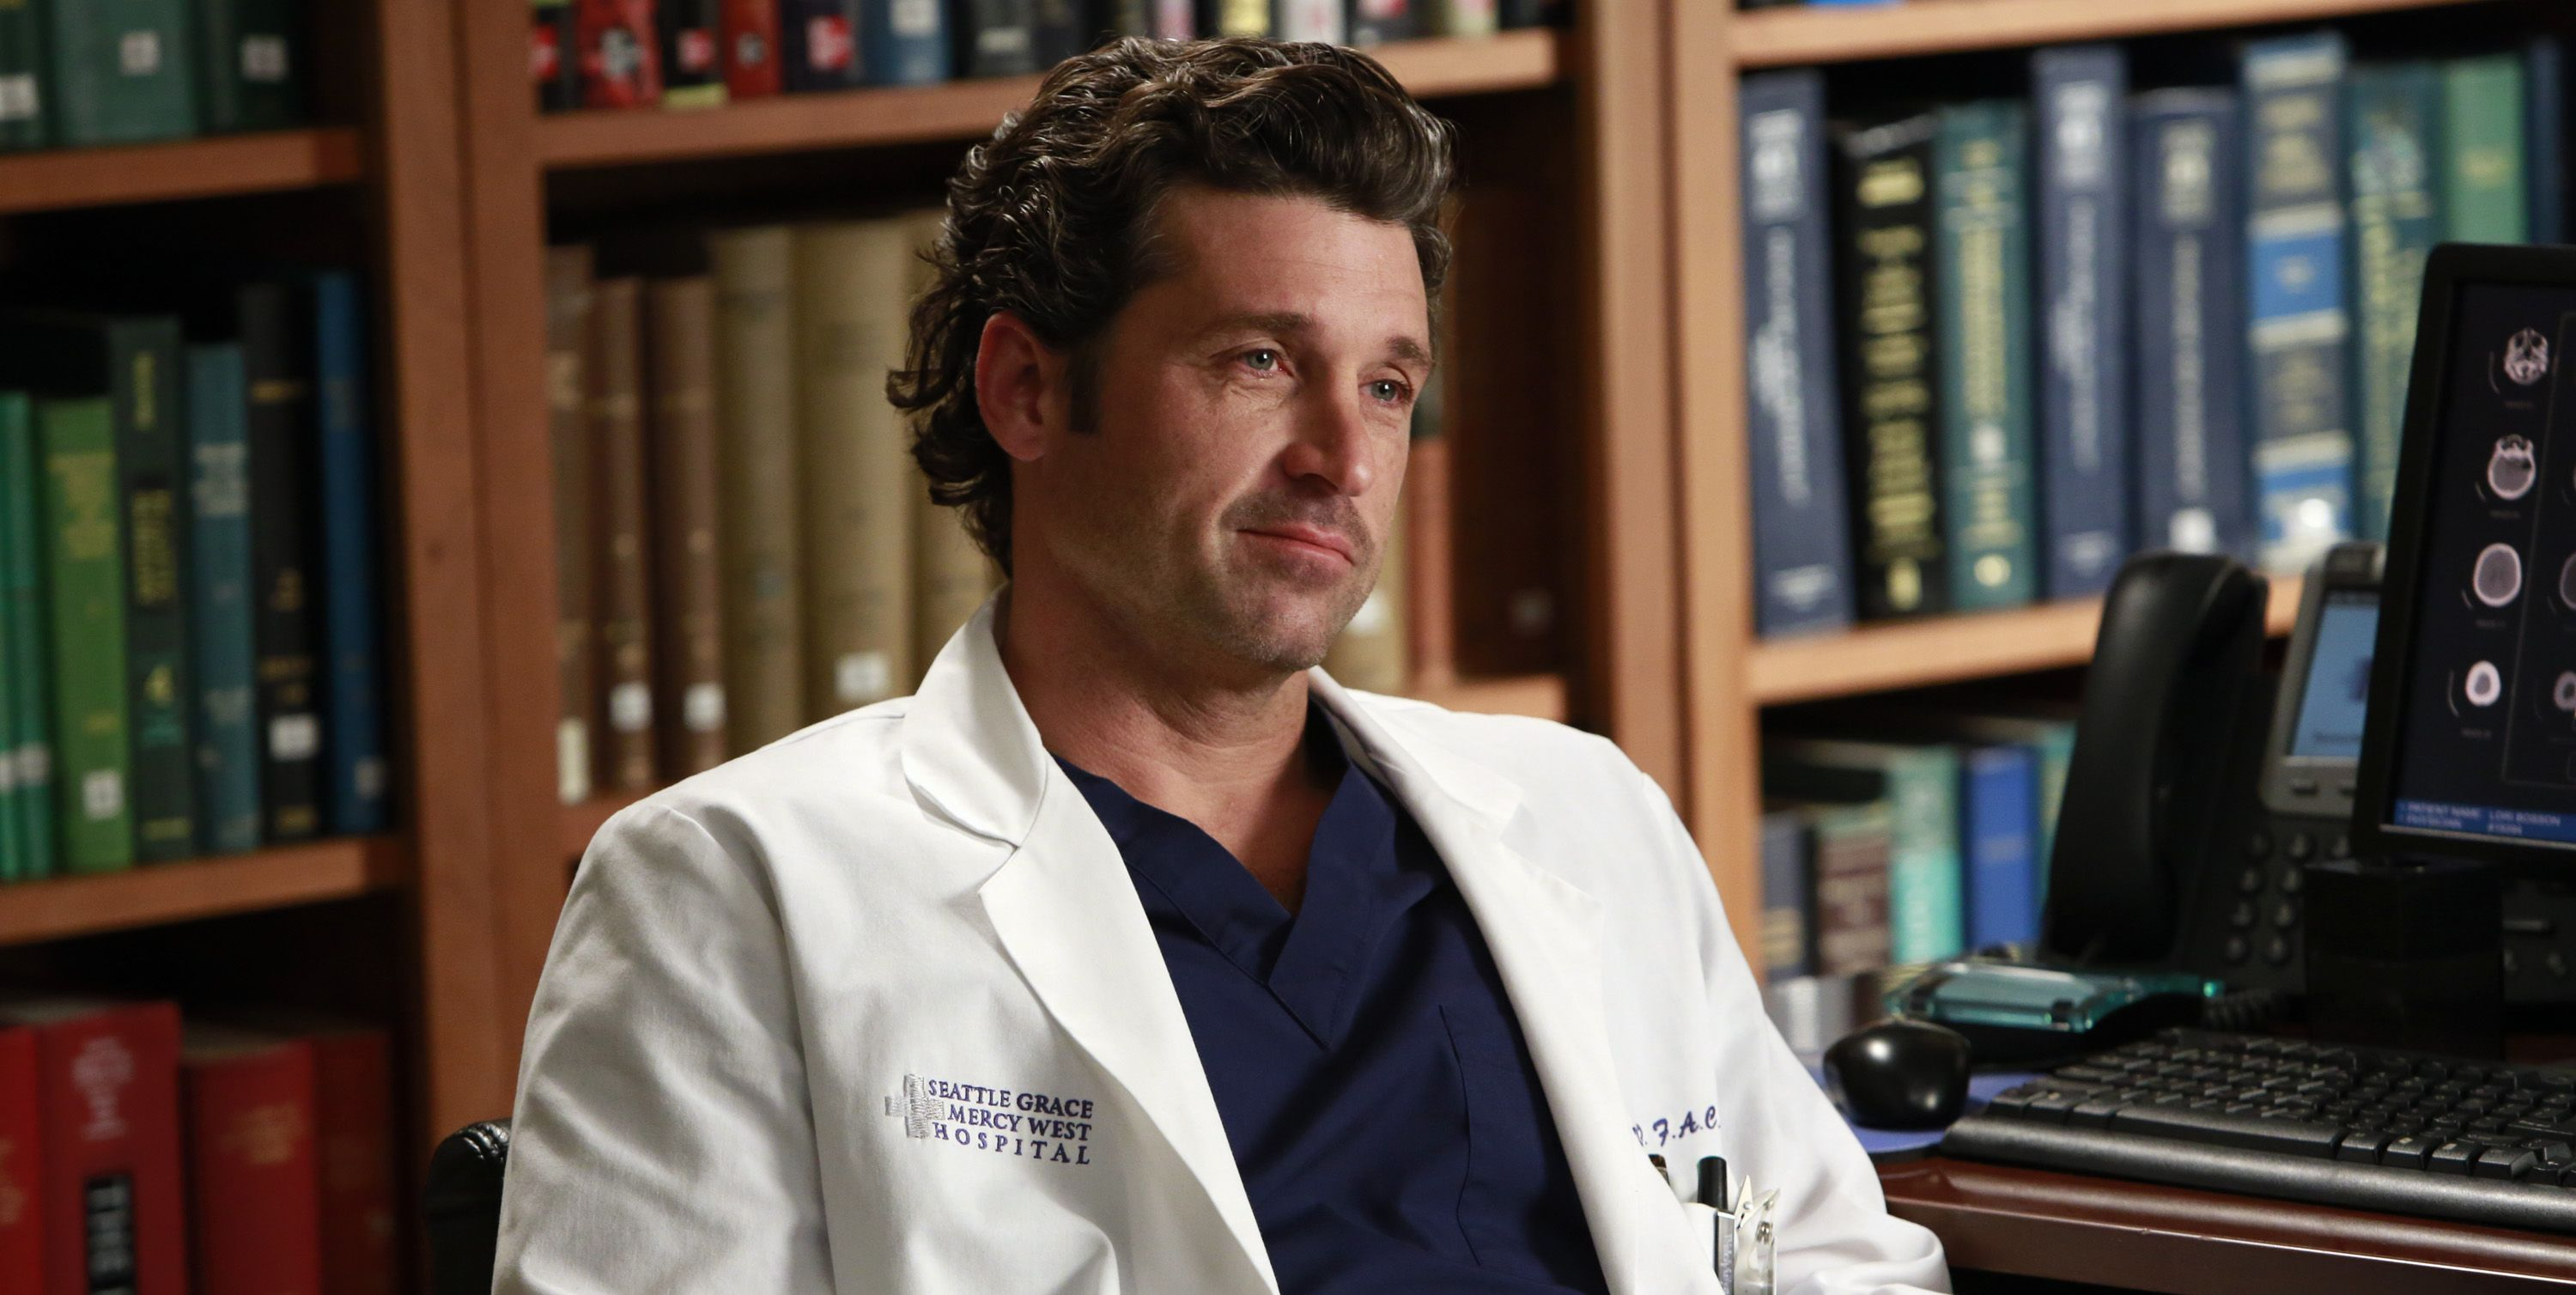 Why Did Patrick Dempsey Leave Grey's Anatomy